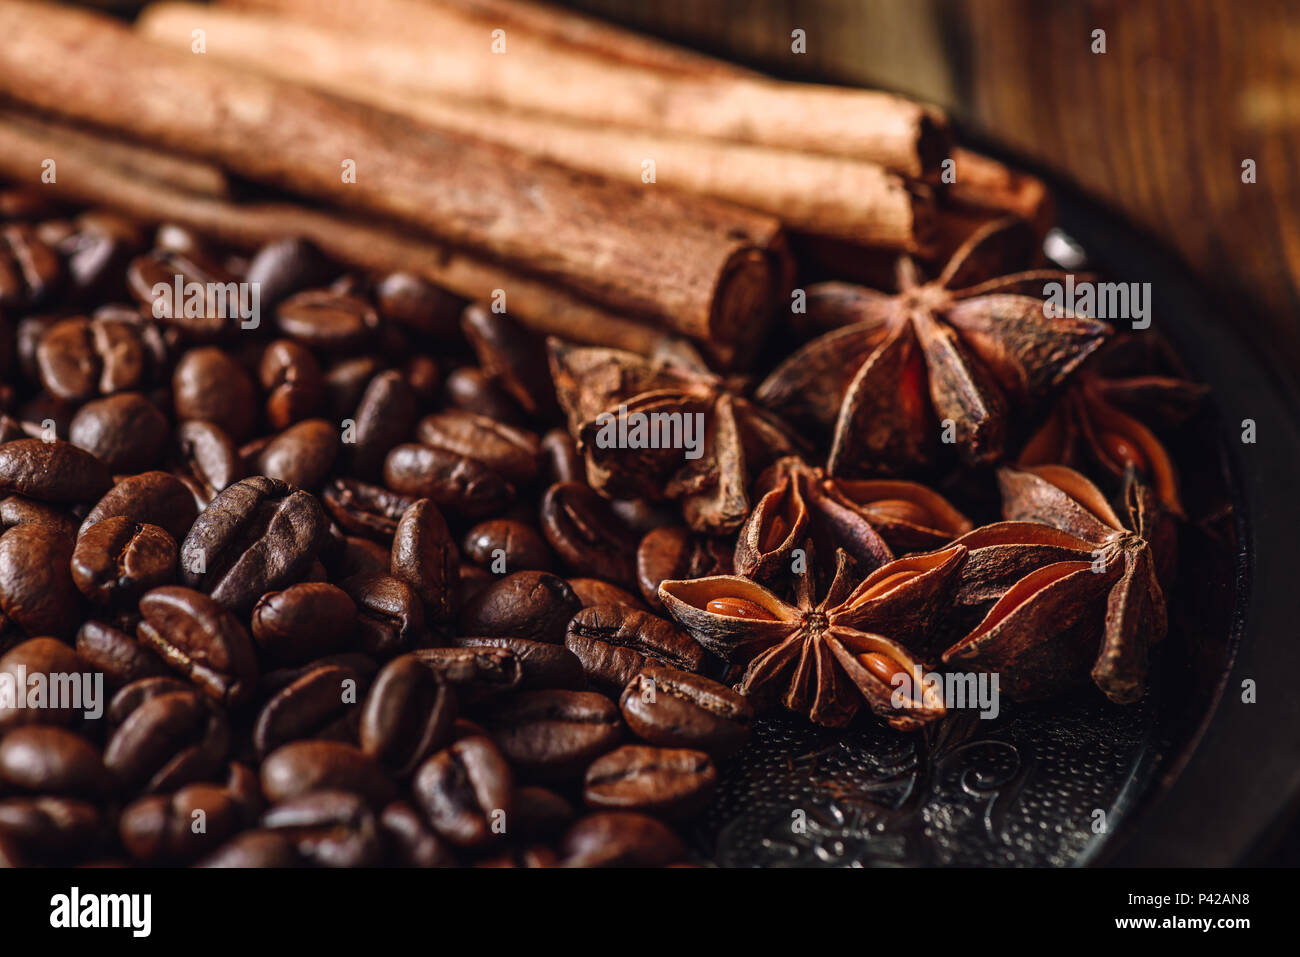 Coffee Beans with Cinnamon Sticks and Chinese Star Anise on Metal Plate. - Stock Image